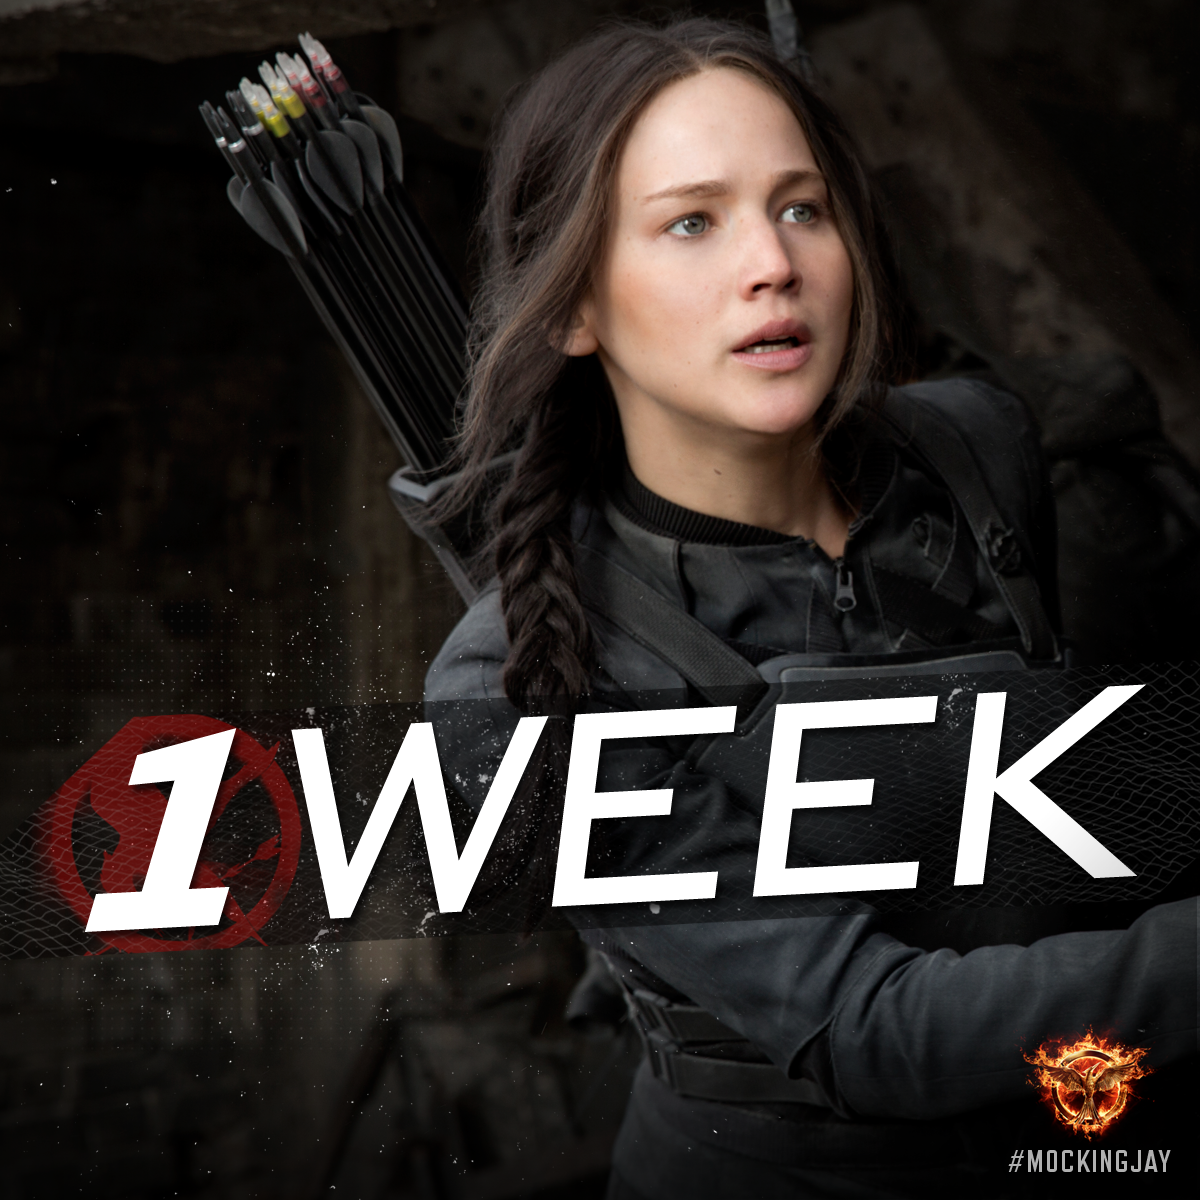 In ONE WEEK... the Mockingjay lives! - Reserve your #MockingjayTickets at www.MockingjayTickets.com!